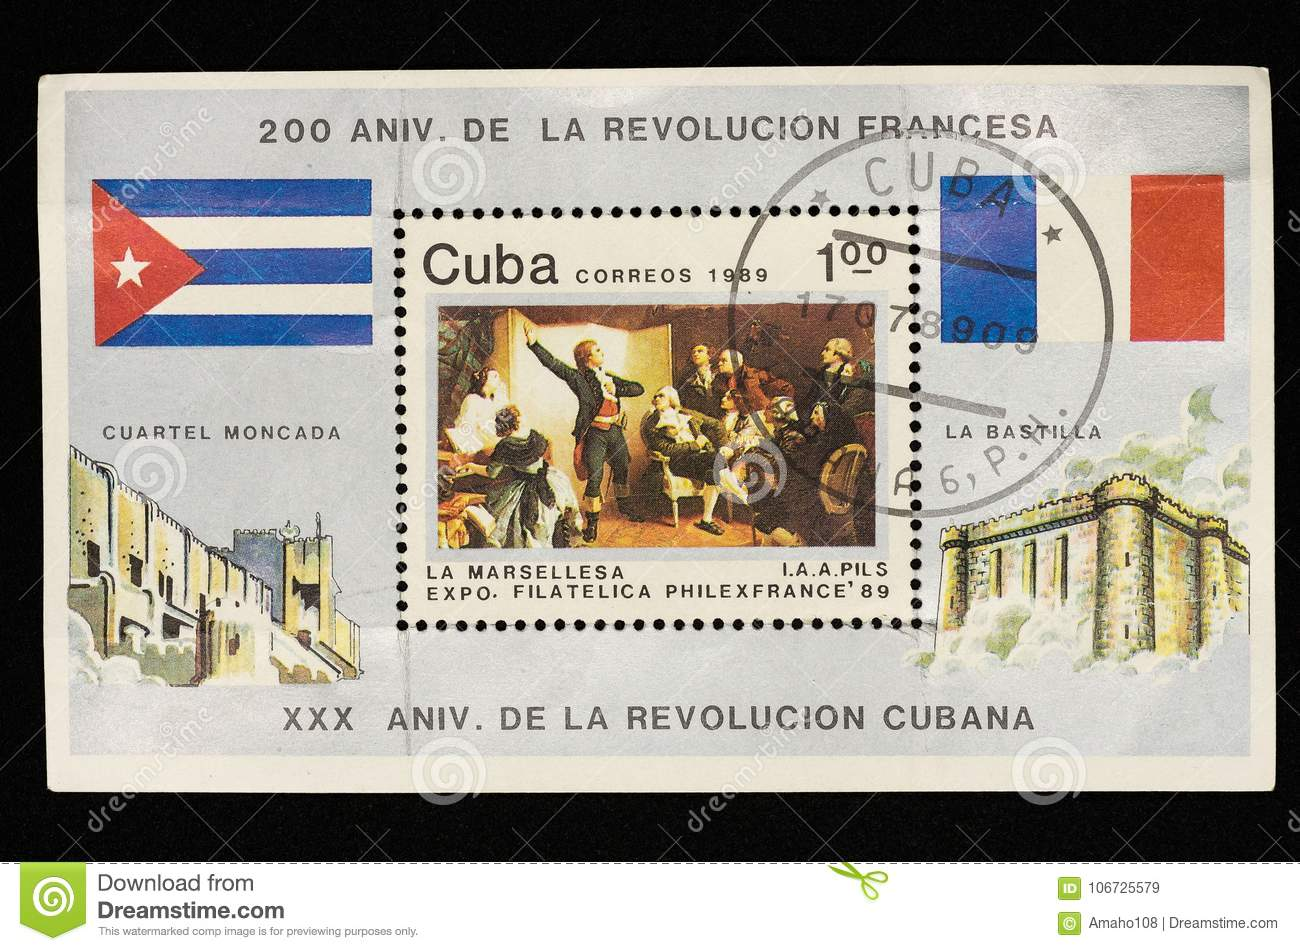 The stamp issued in Cuba in 1989